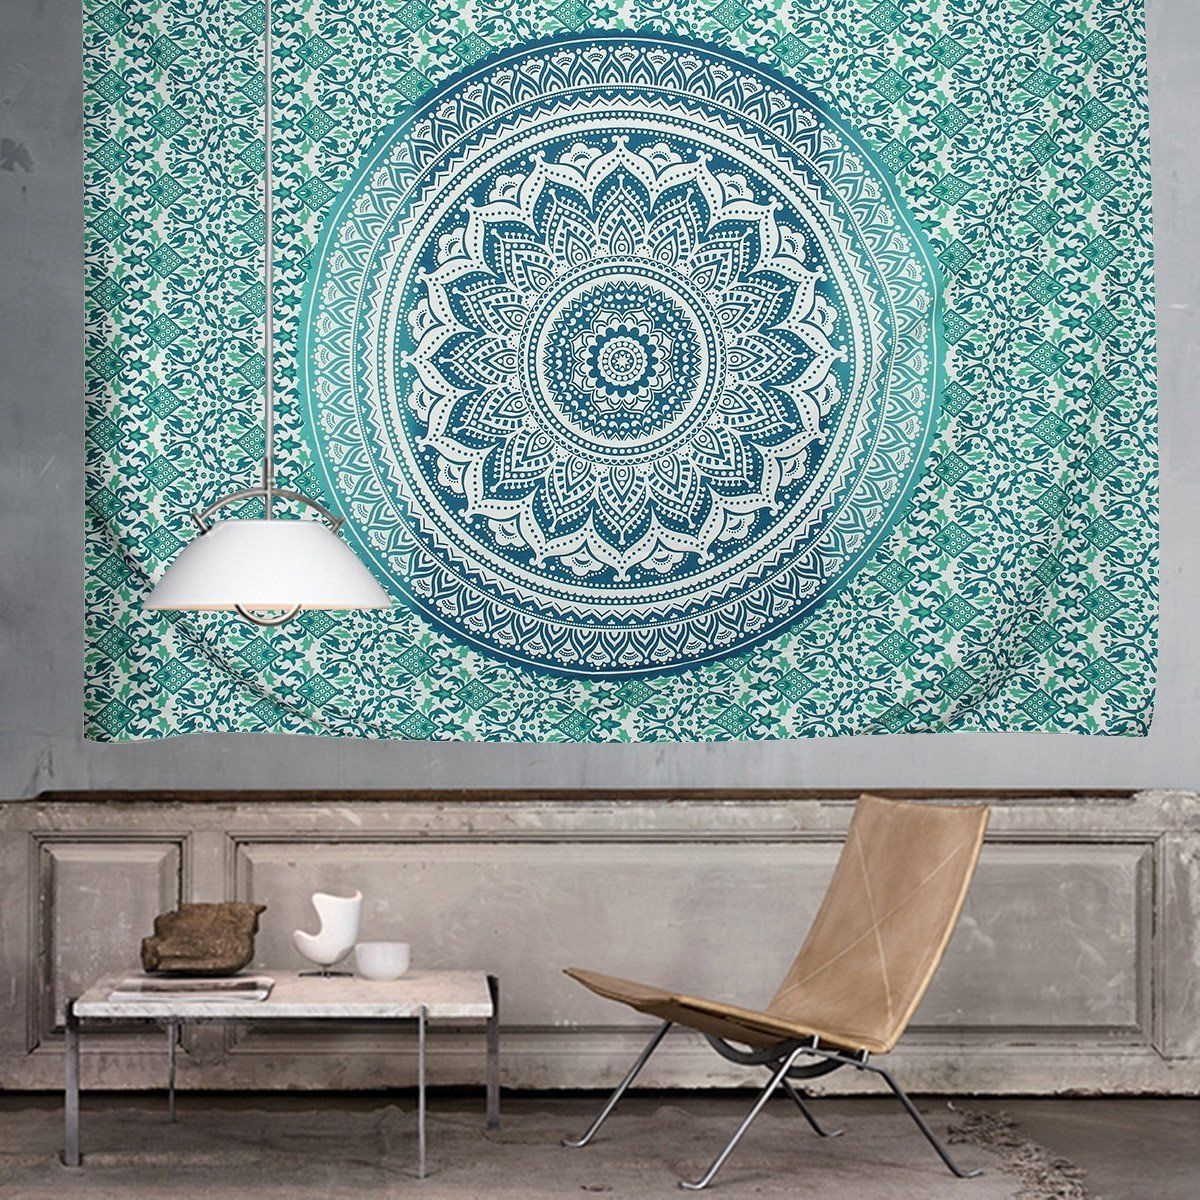 Indian Fabric Wall Art Regarding Fashionable Ombre Indian Wall Hanging Hippie Mandala Tapestry Bohemian (View 11 of 15)